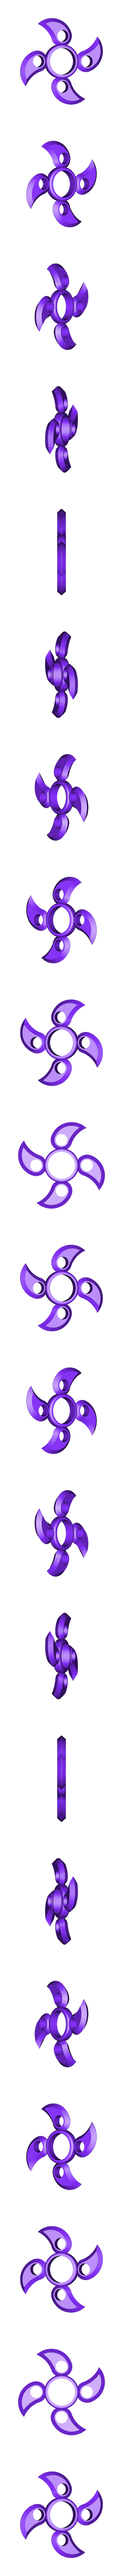 edgy-yin-yang-4x-38ball-160rot-1.5sh-2ovr.stl Download free STL file Customizable Edgy Yin Yang Fidget Spinner (pick-a-weight) • 3D printable model, Lucina